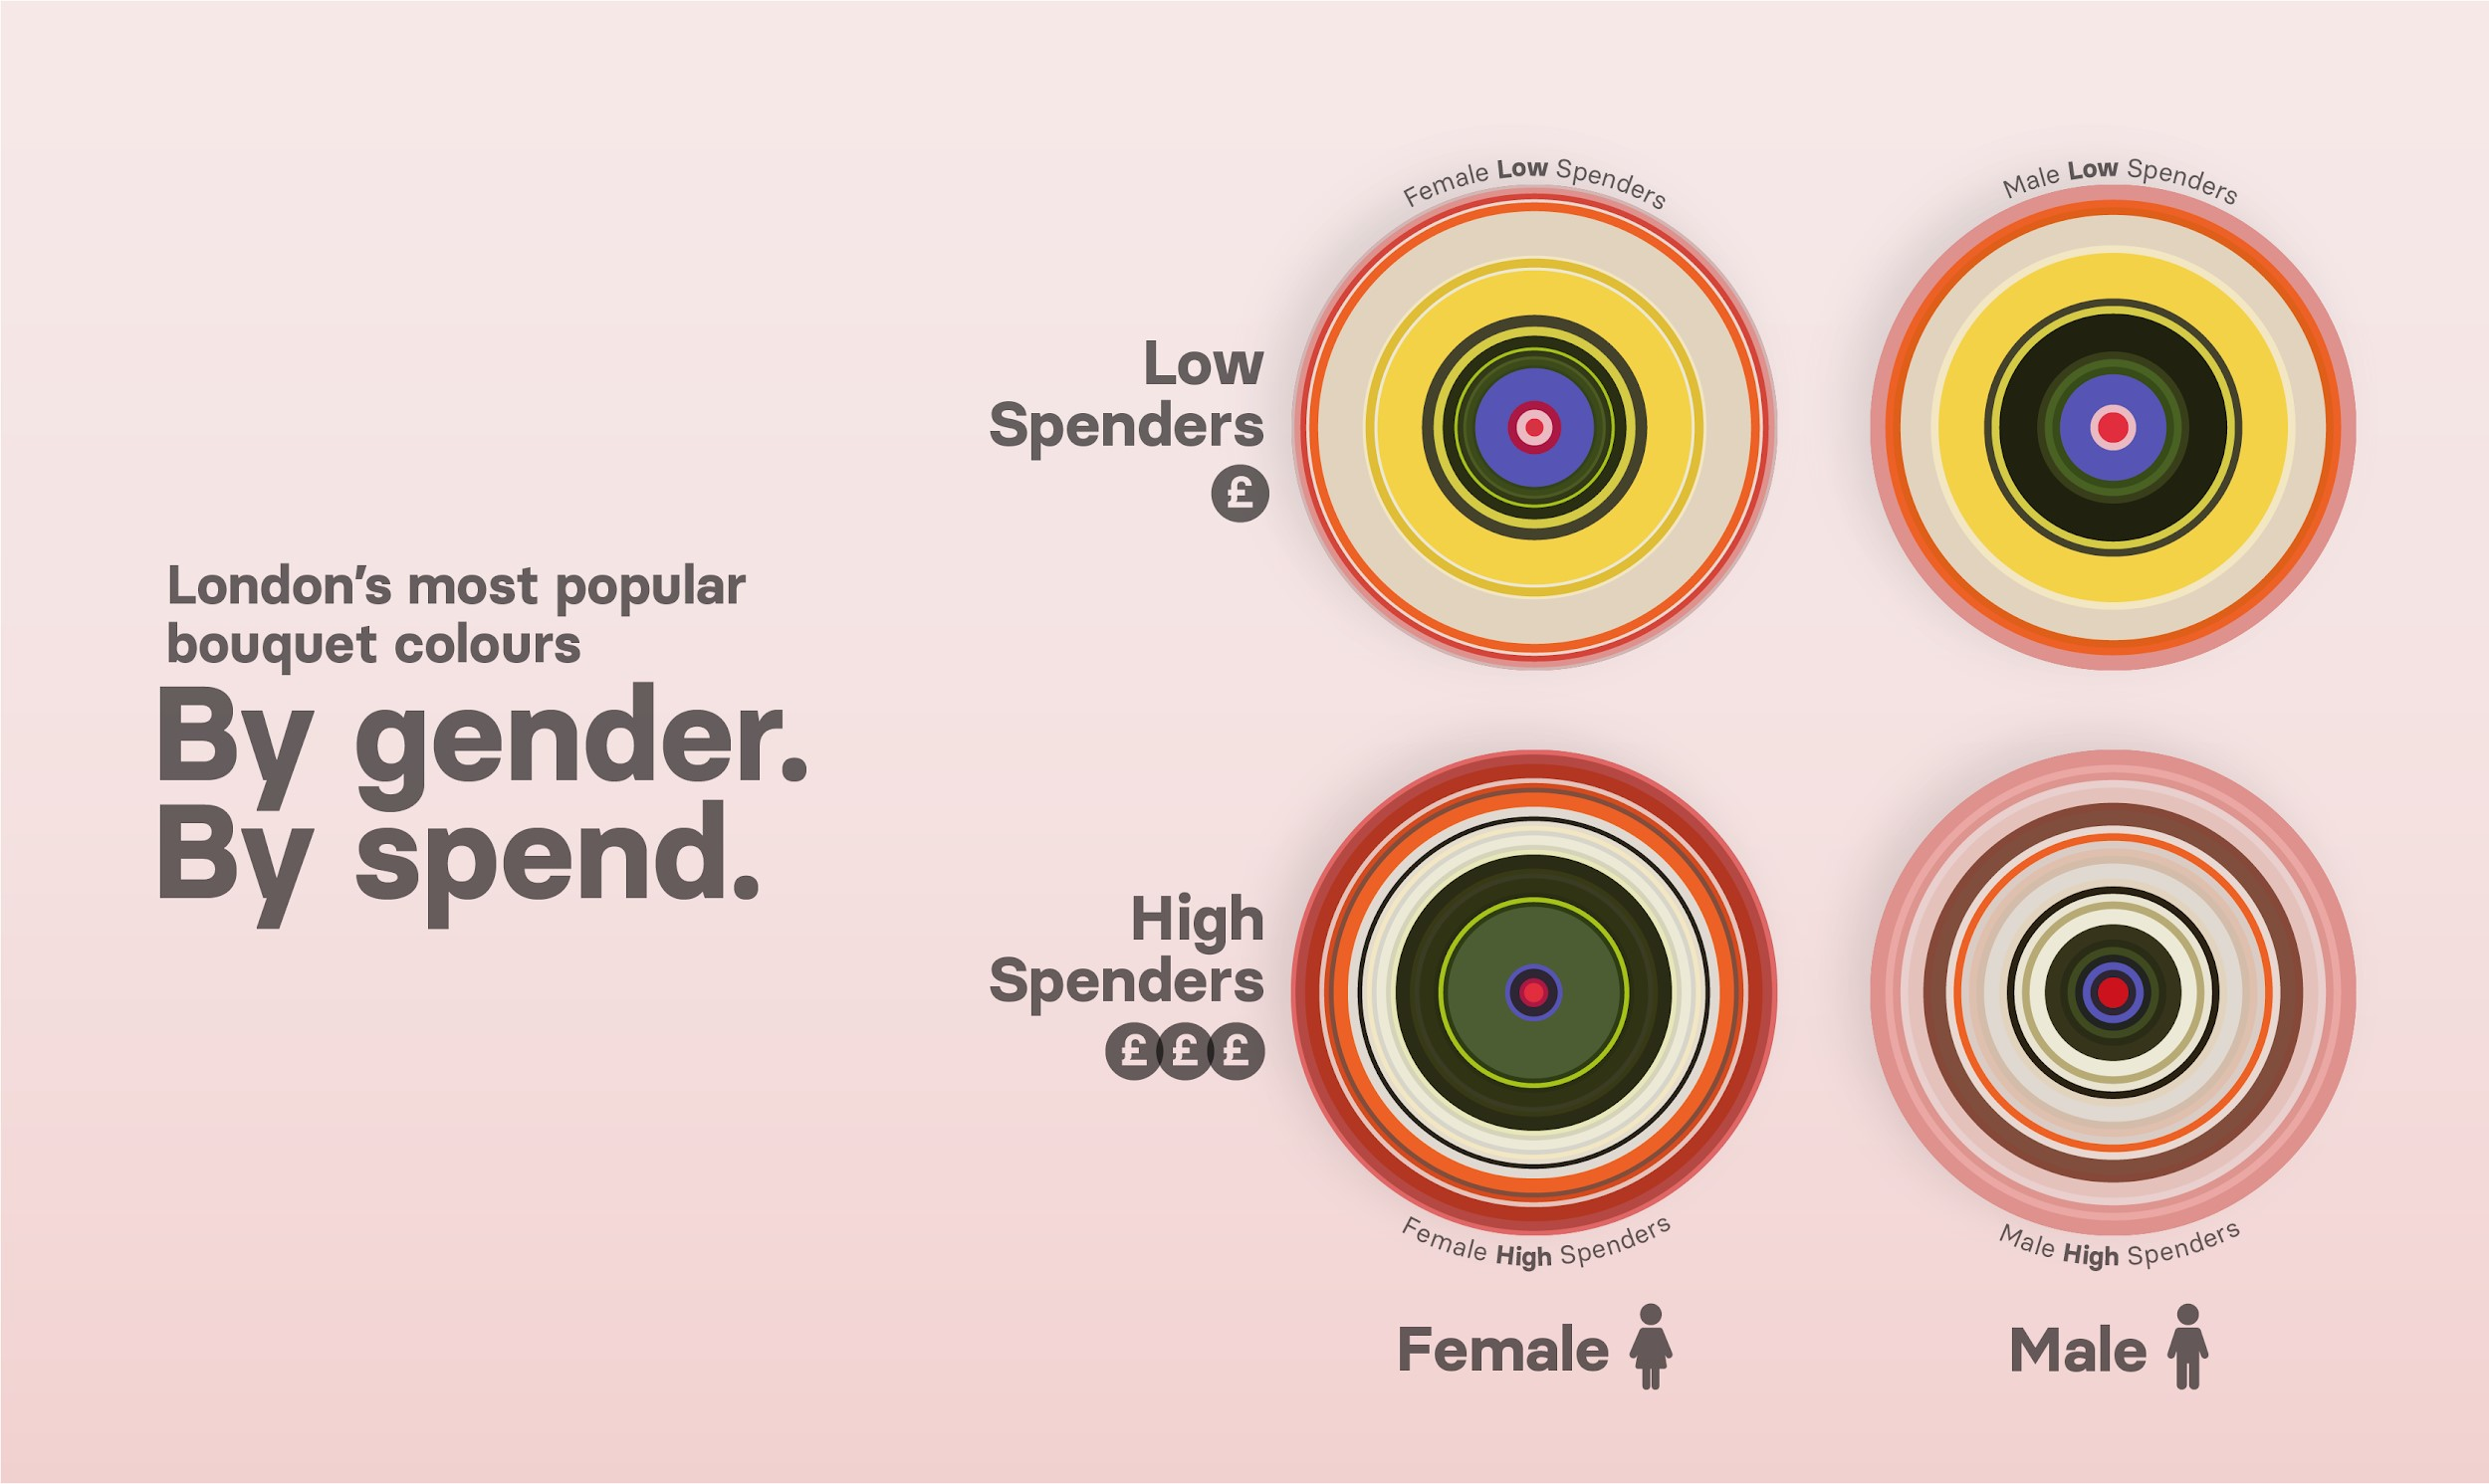 Popular flower colours in London by gender and spend